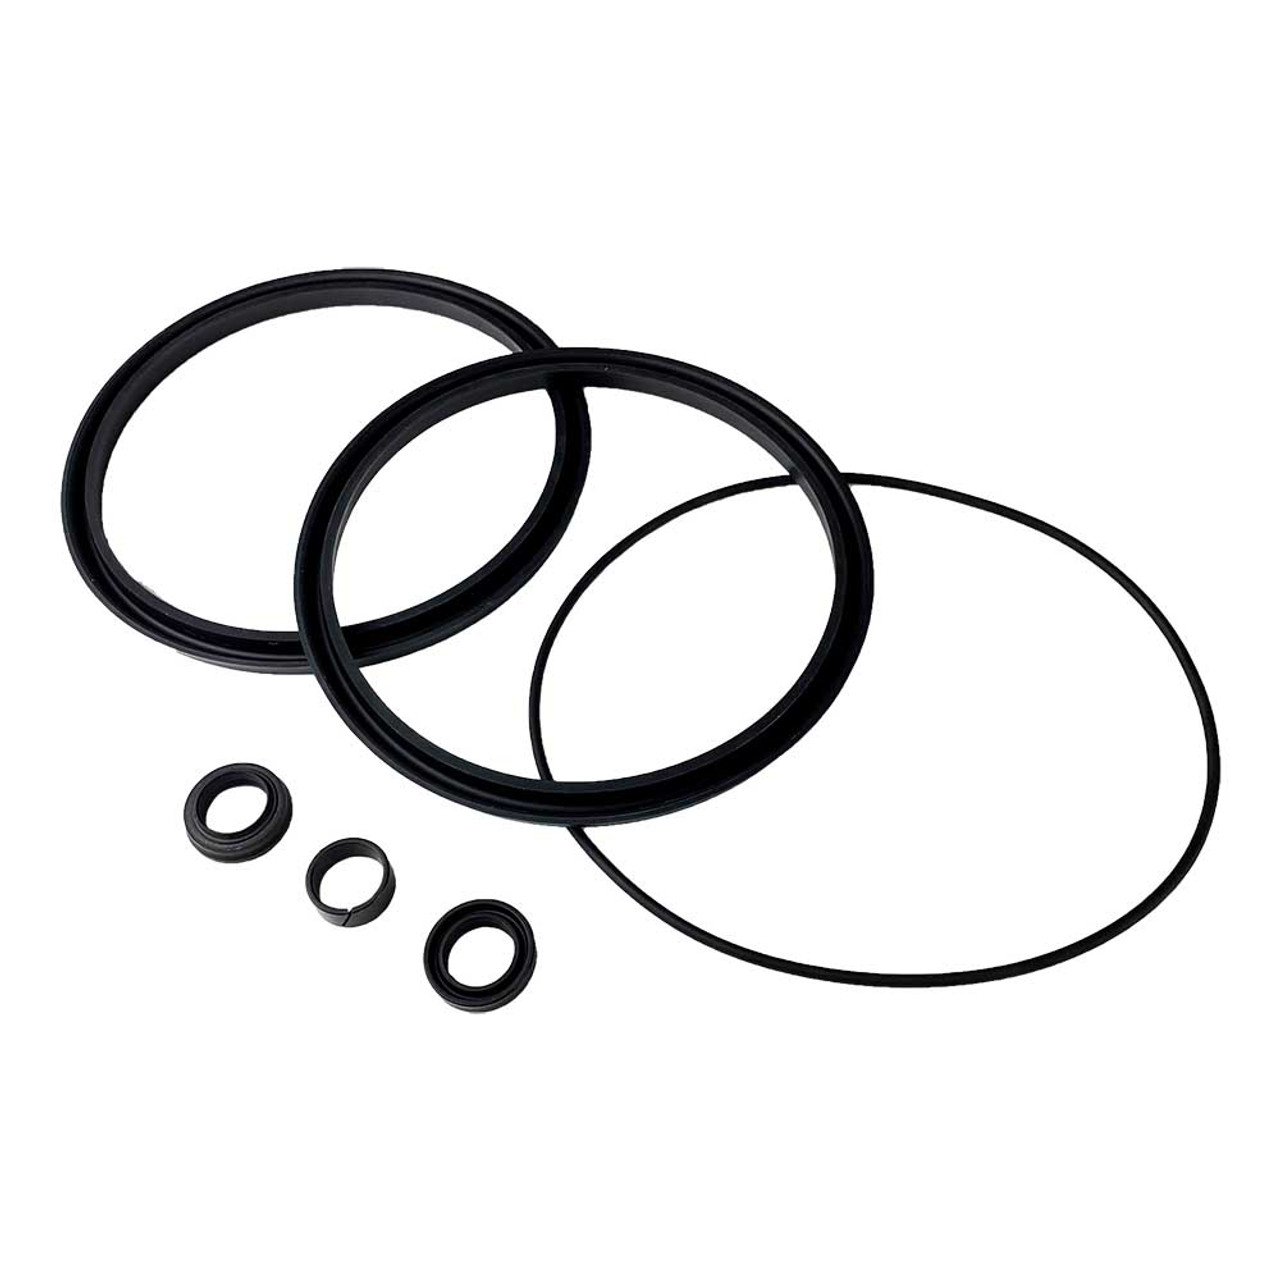 HOFMANN Bead Breaker Cylinder Seal Replacement Kit for SICE MONTY 2200603